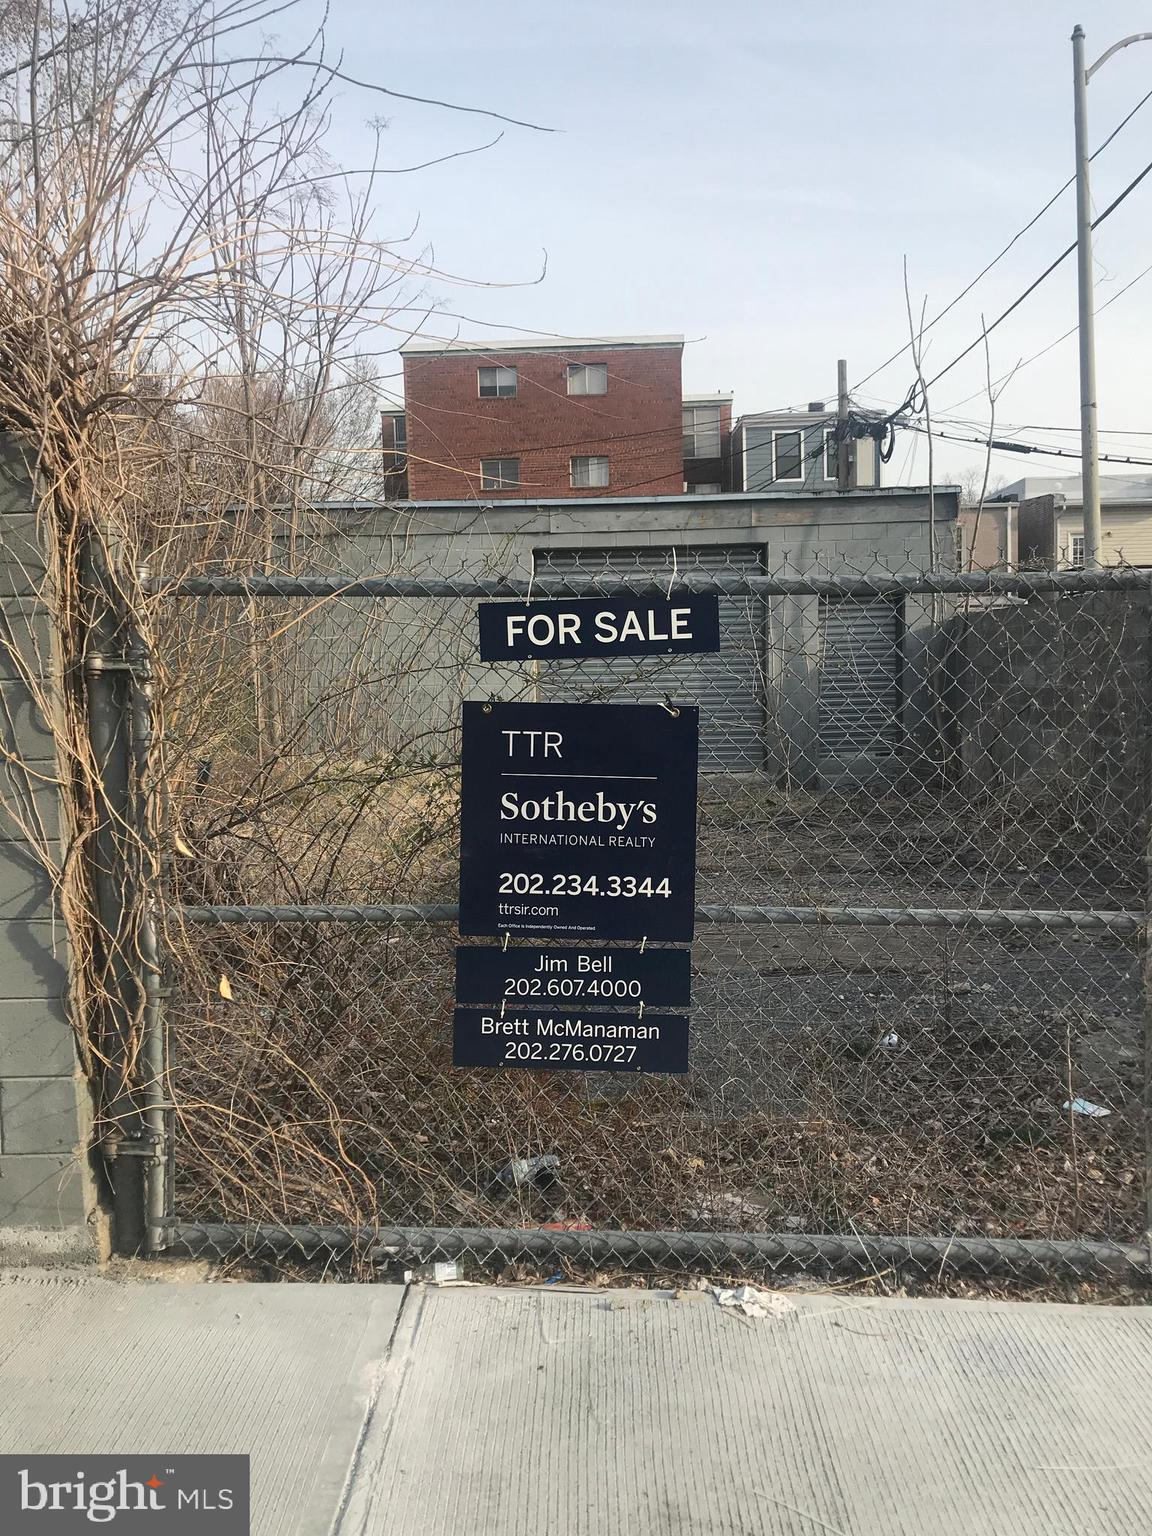 Located within the hot neighborhood of Eckington sits this blank canvas in a bright sunny ally off o